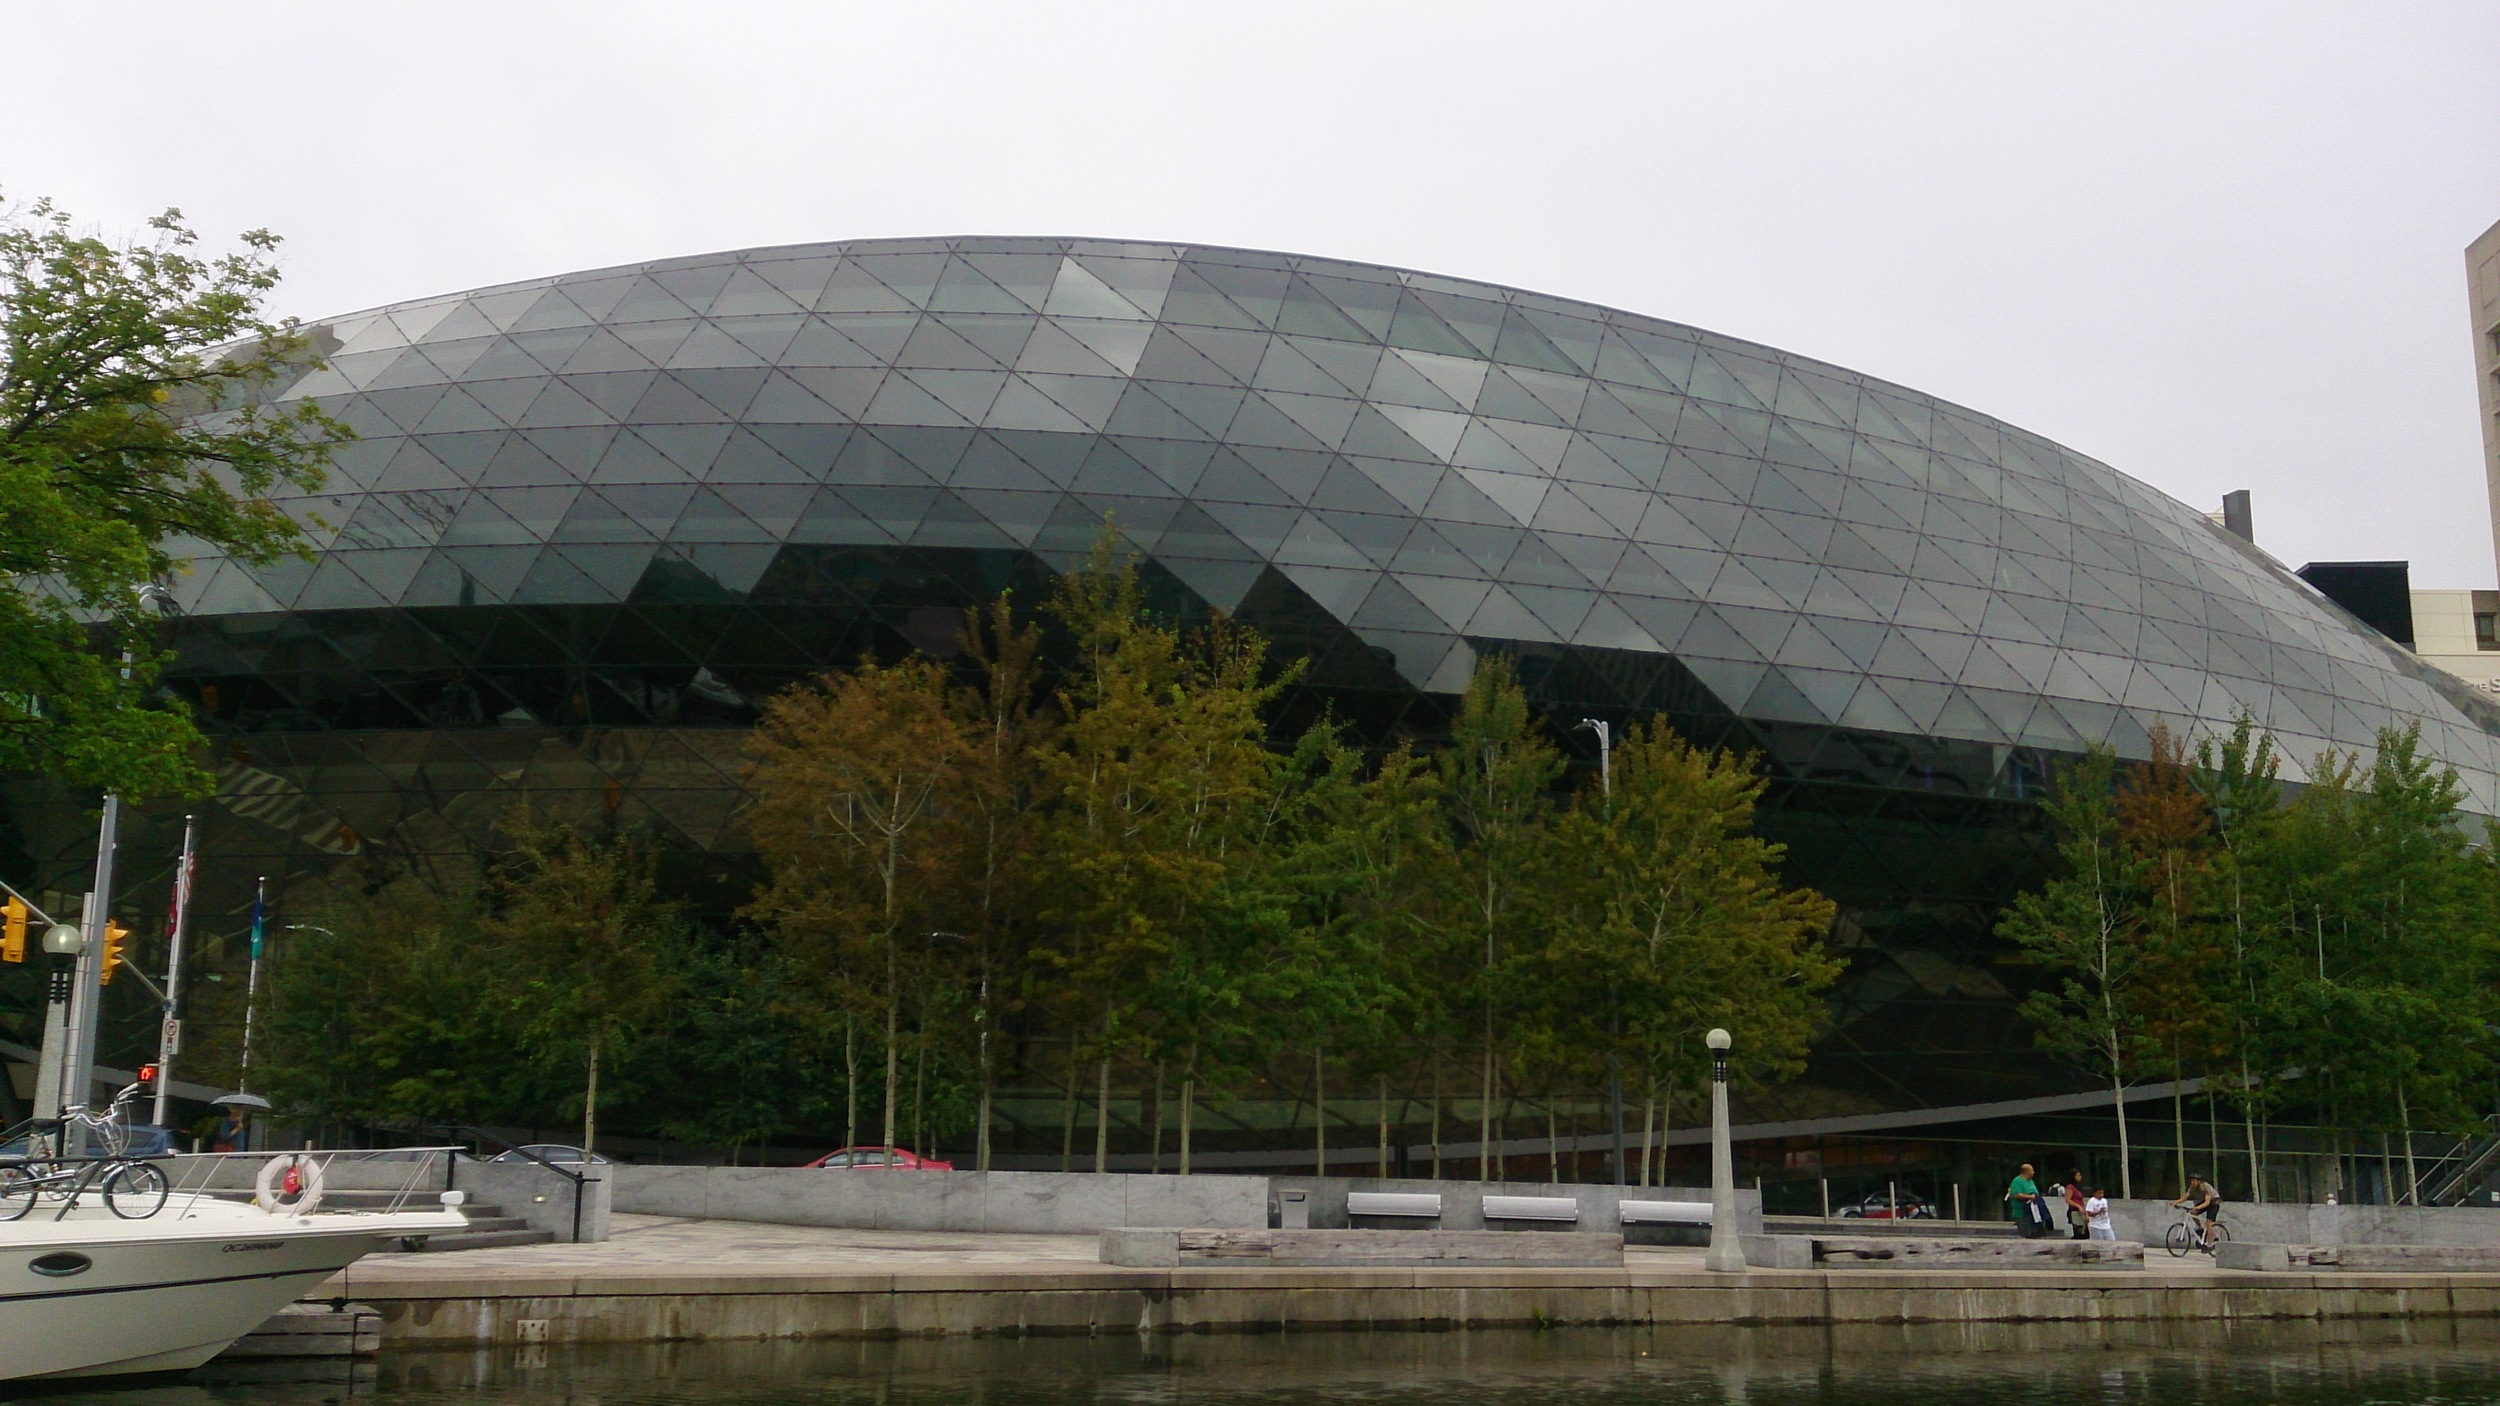 The Shaw Centre